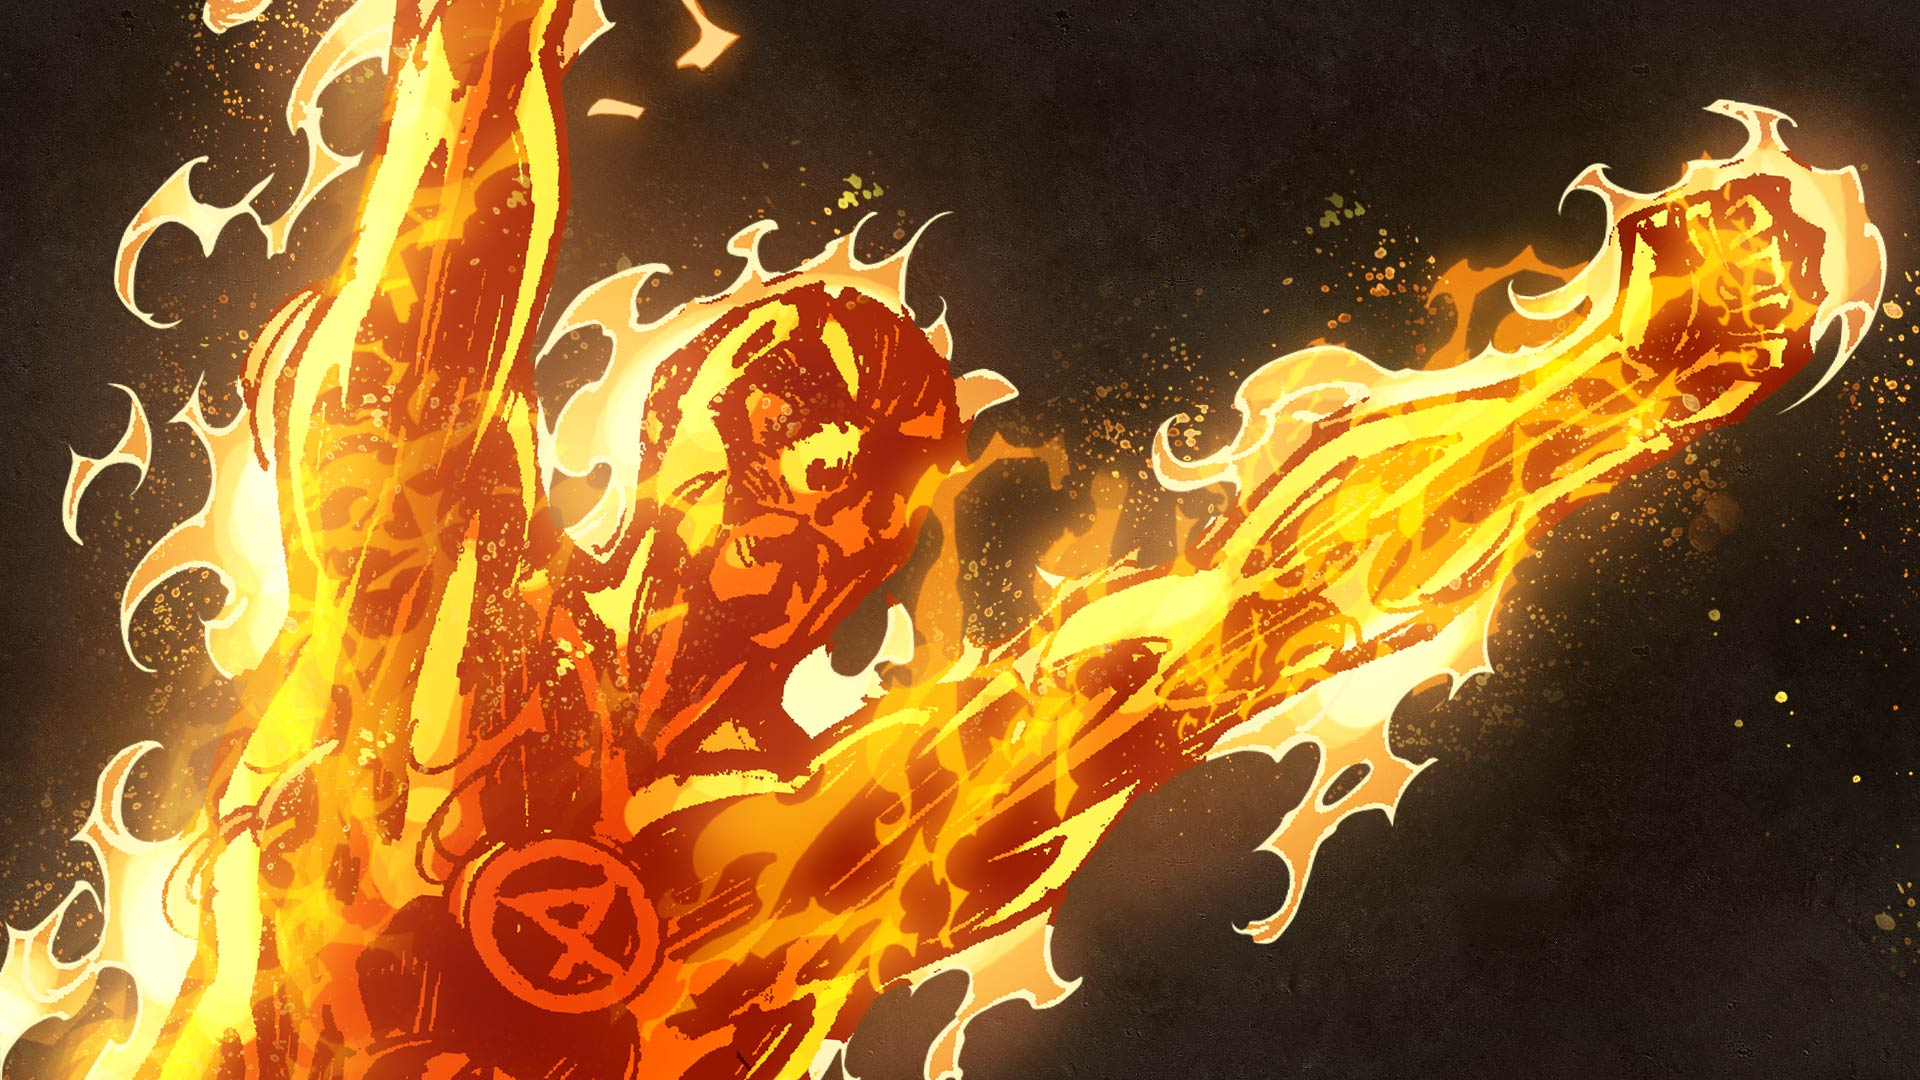 Human Torch HD Wallpaper For Your Desktop 1920x1080